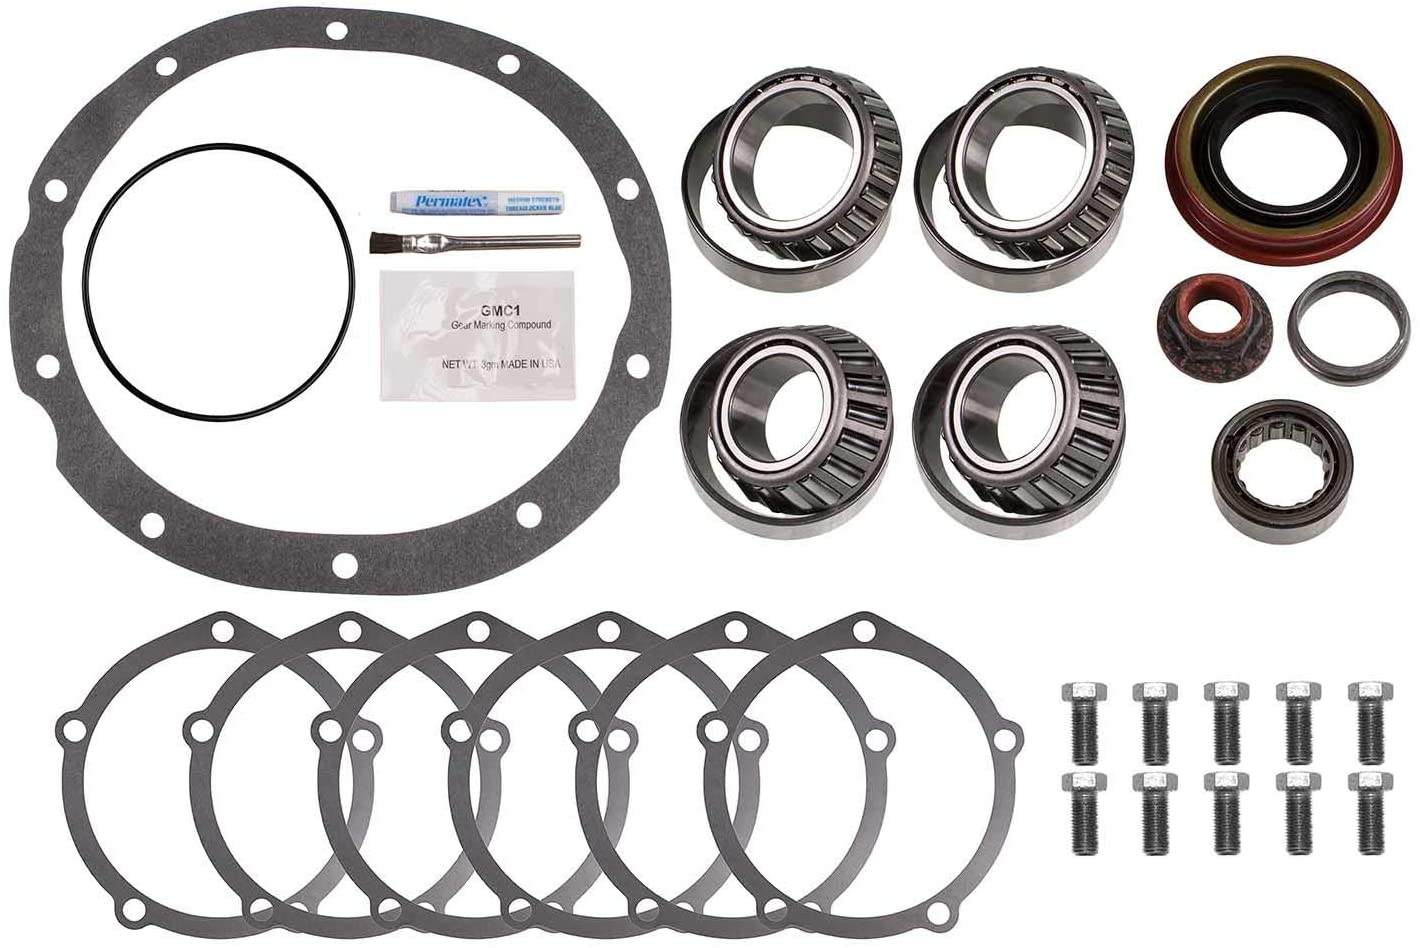 Richmond 8310111 Gear Set Installation Kit